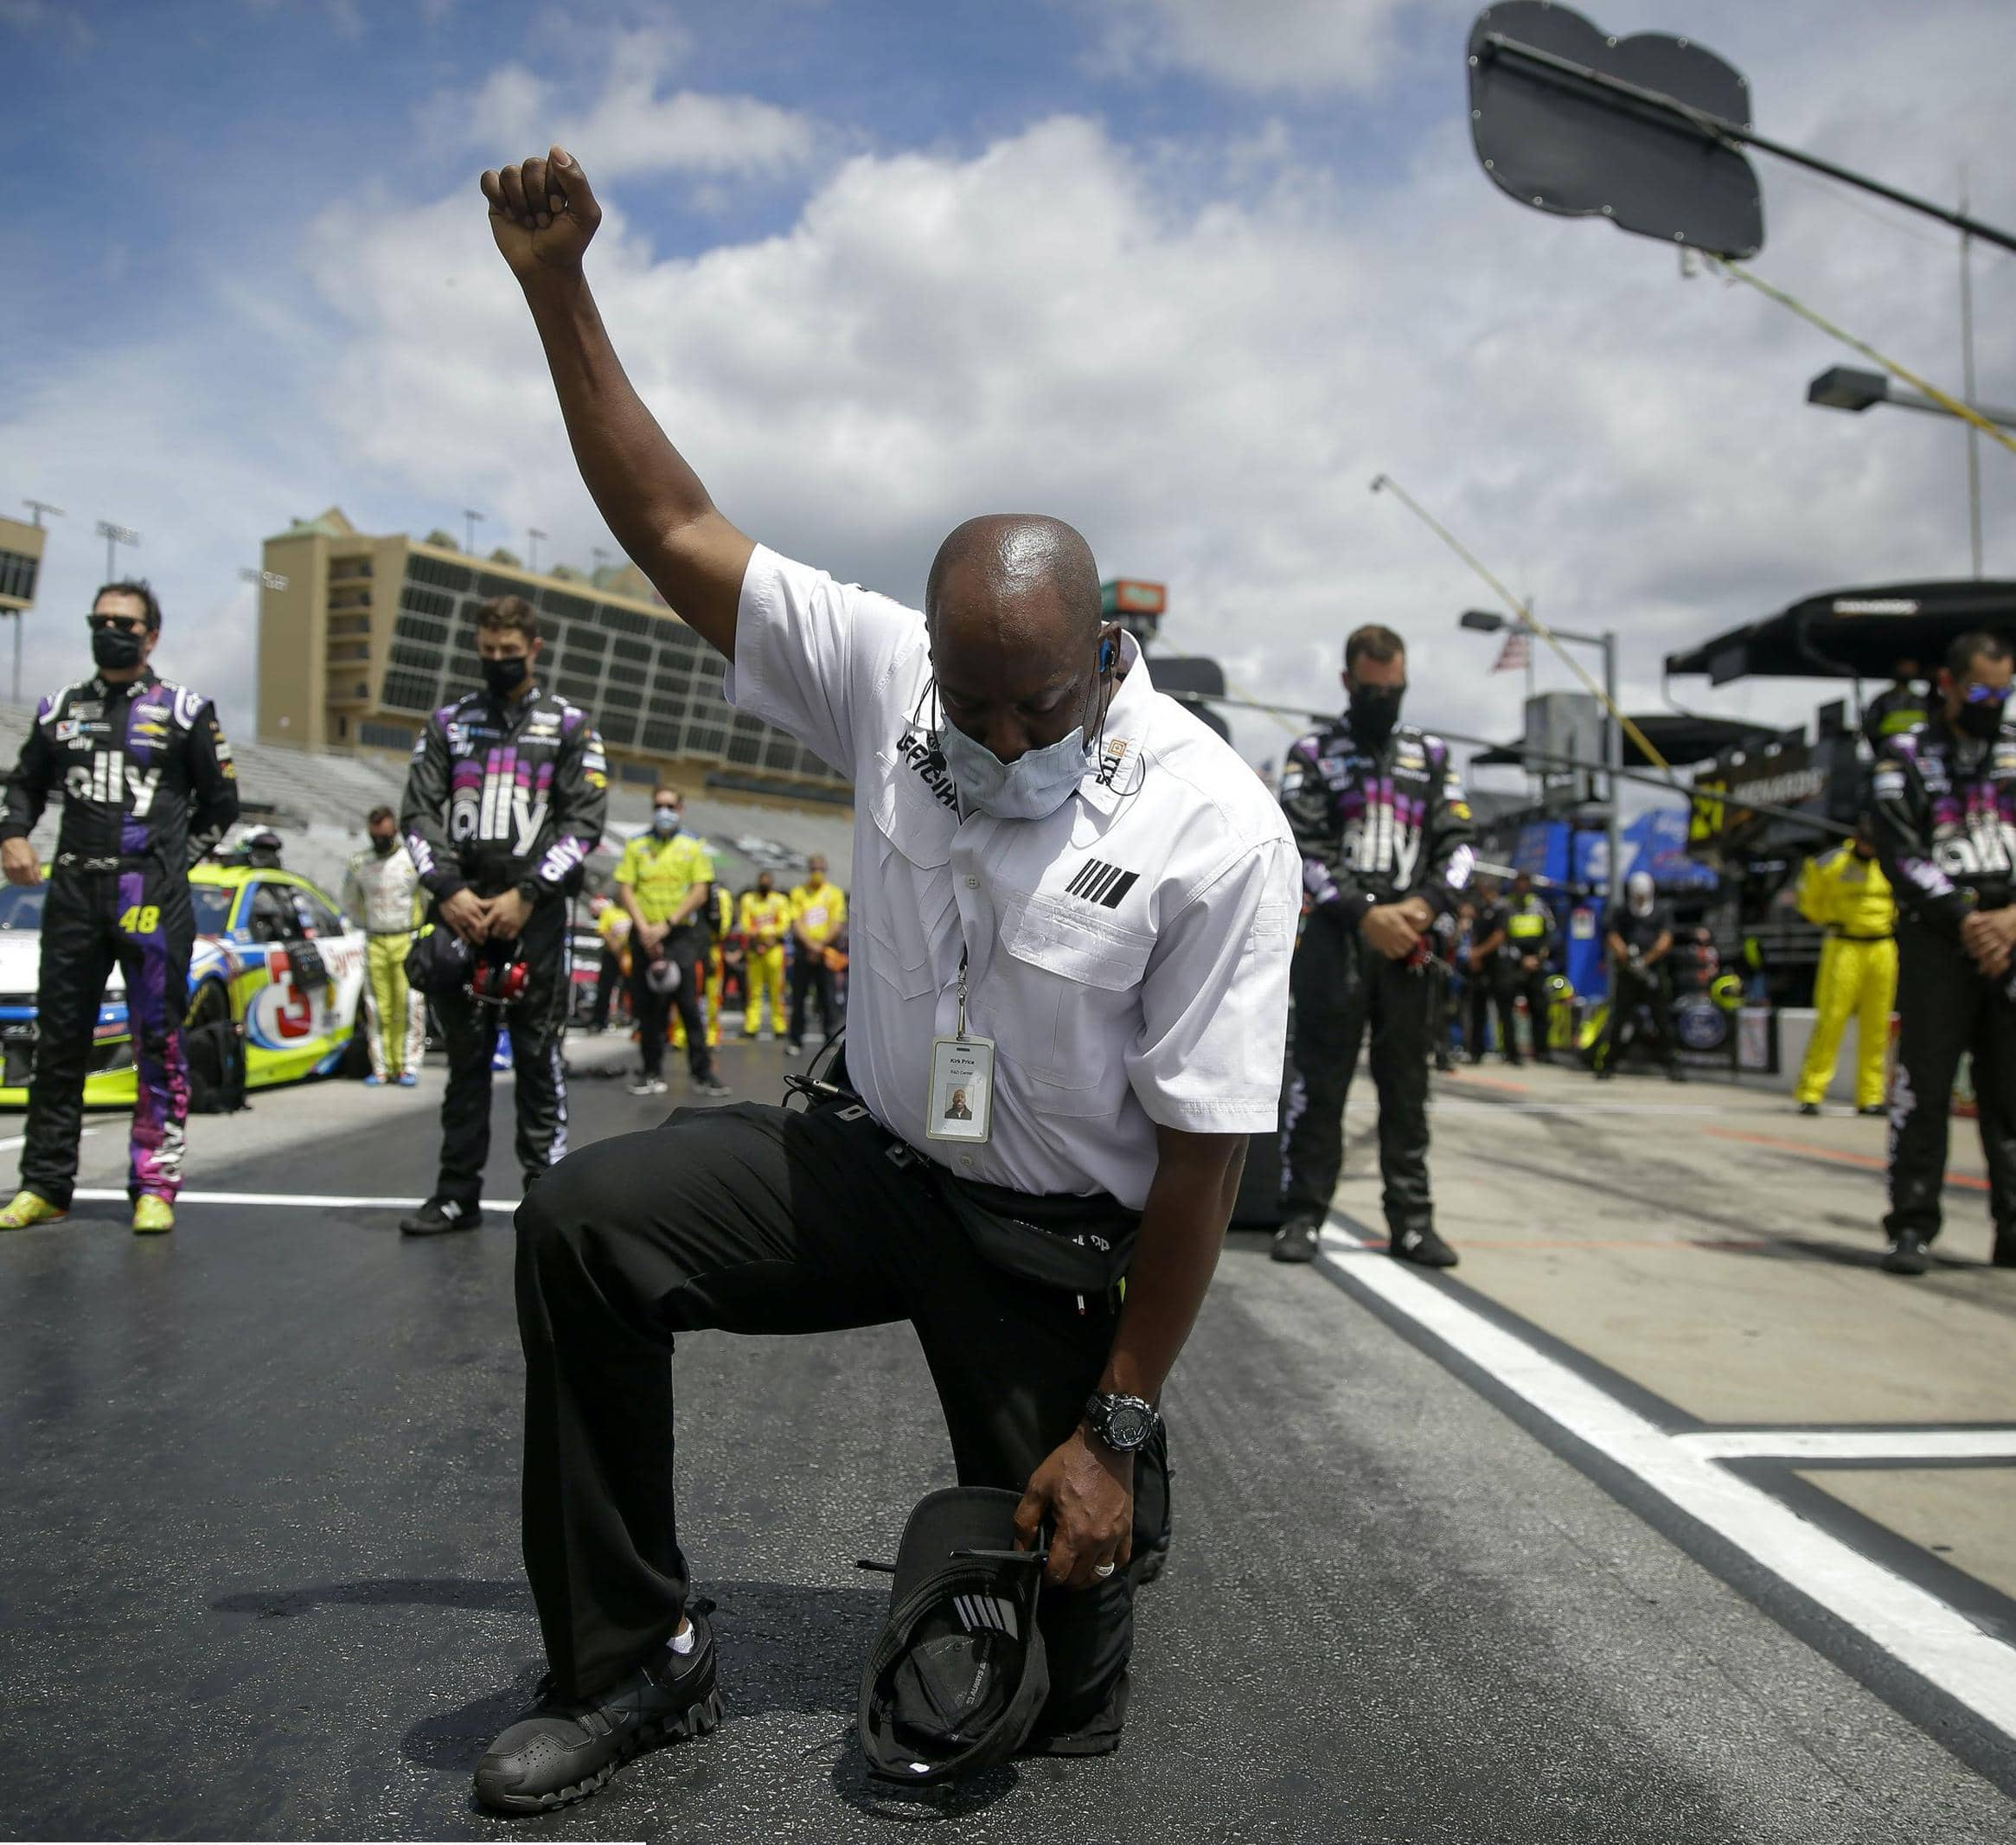 Ban The Confederate Flag? NASCAR Could See The End Of An Era